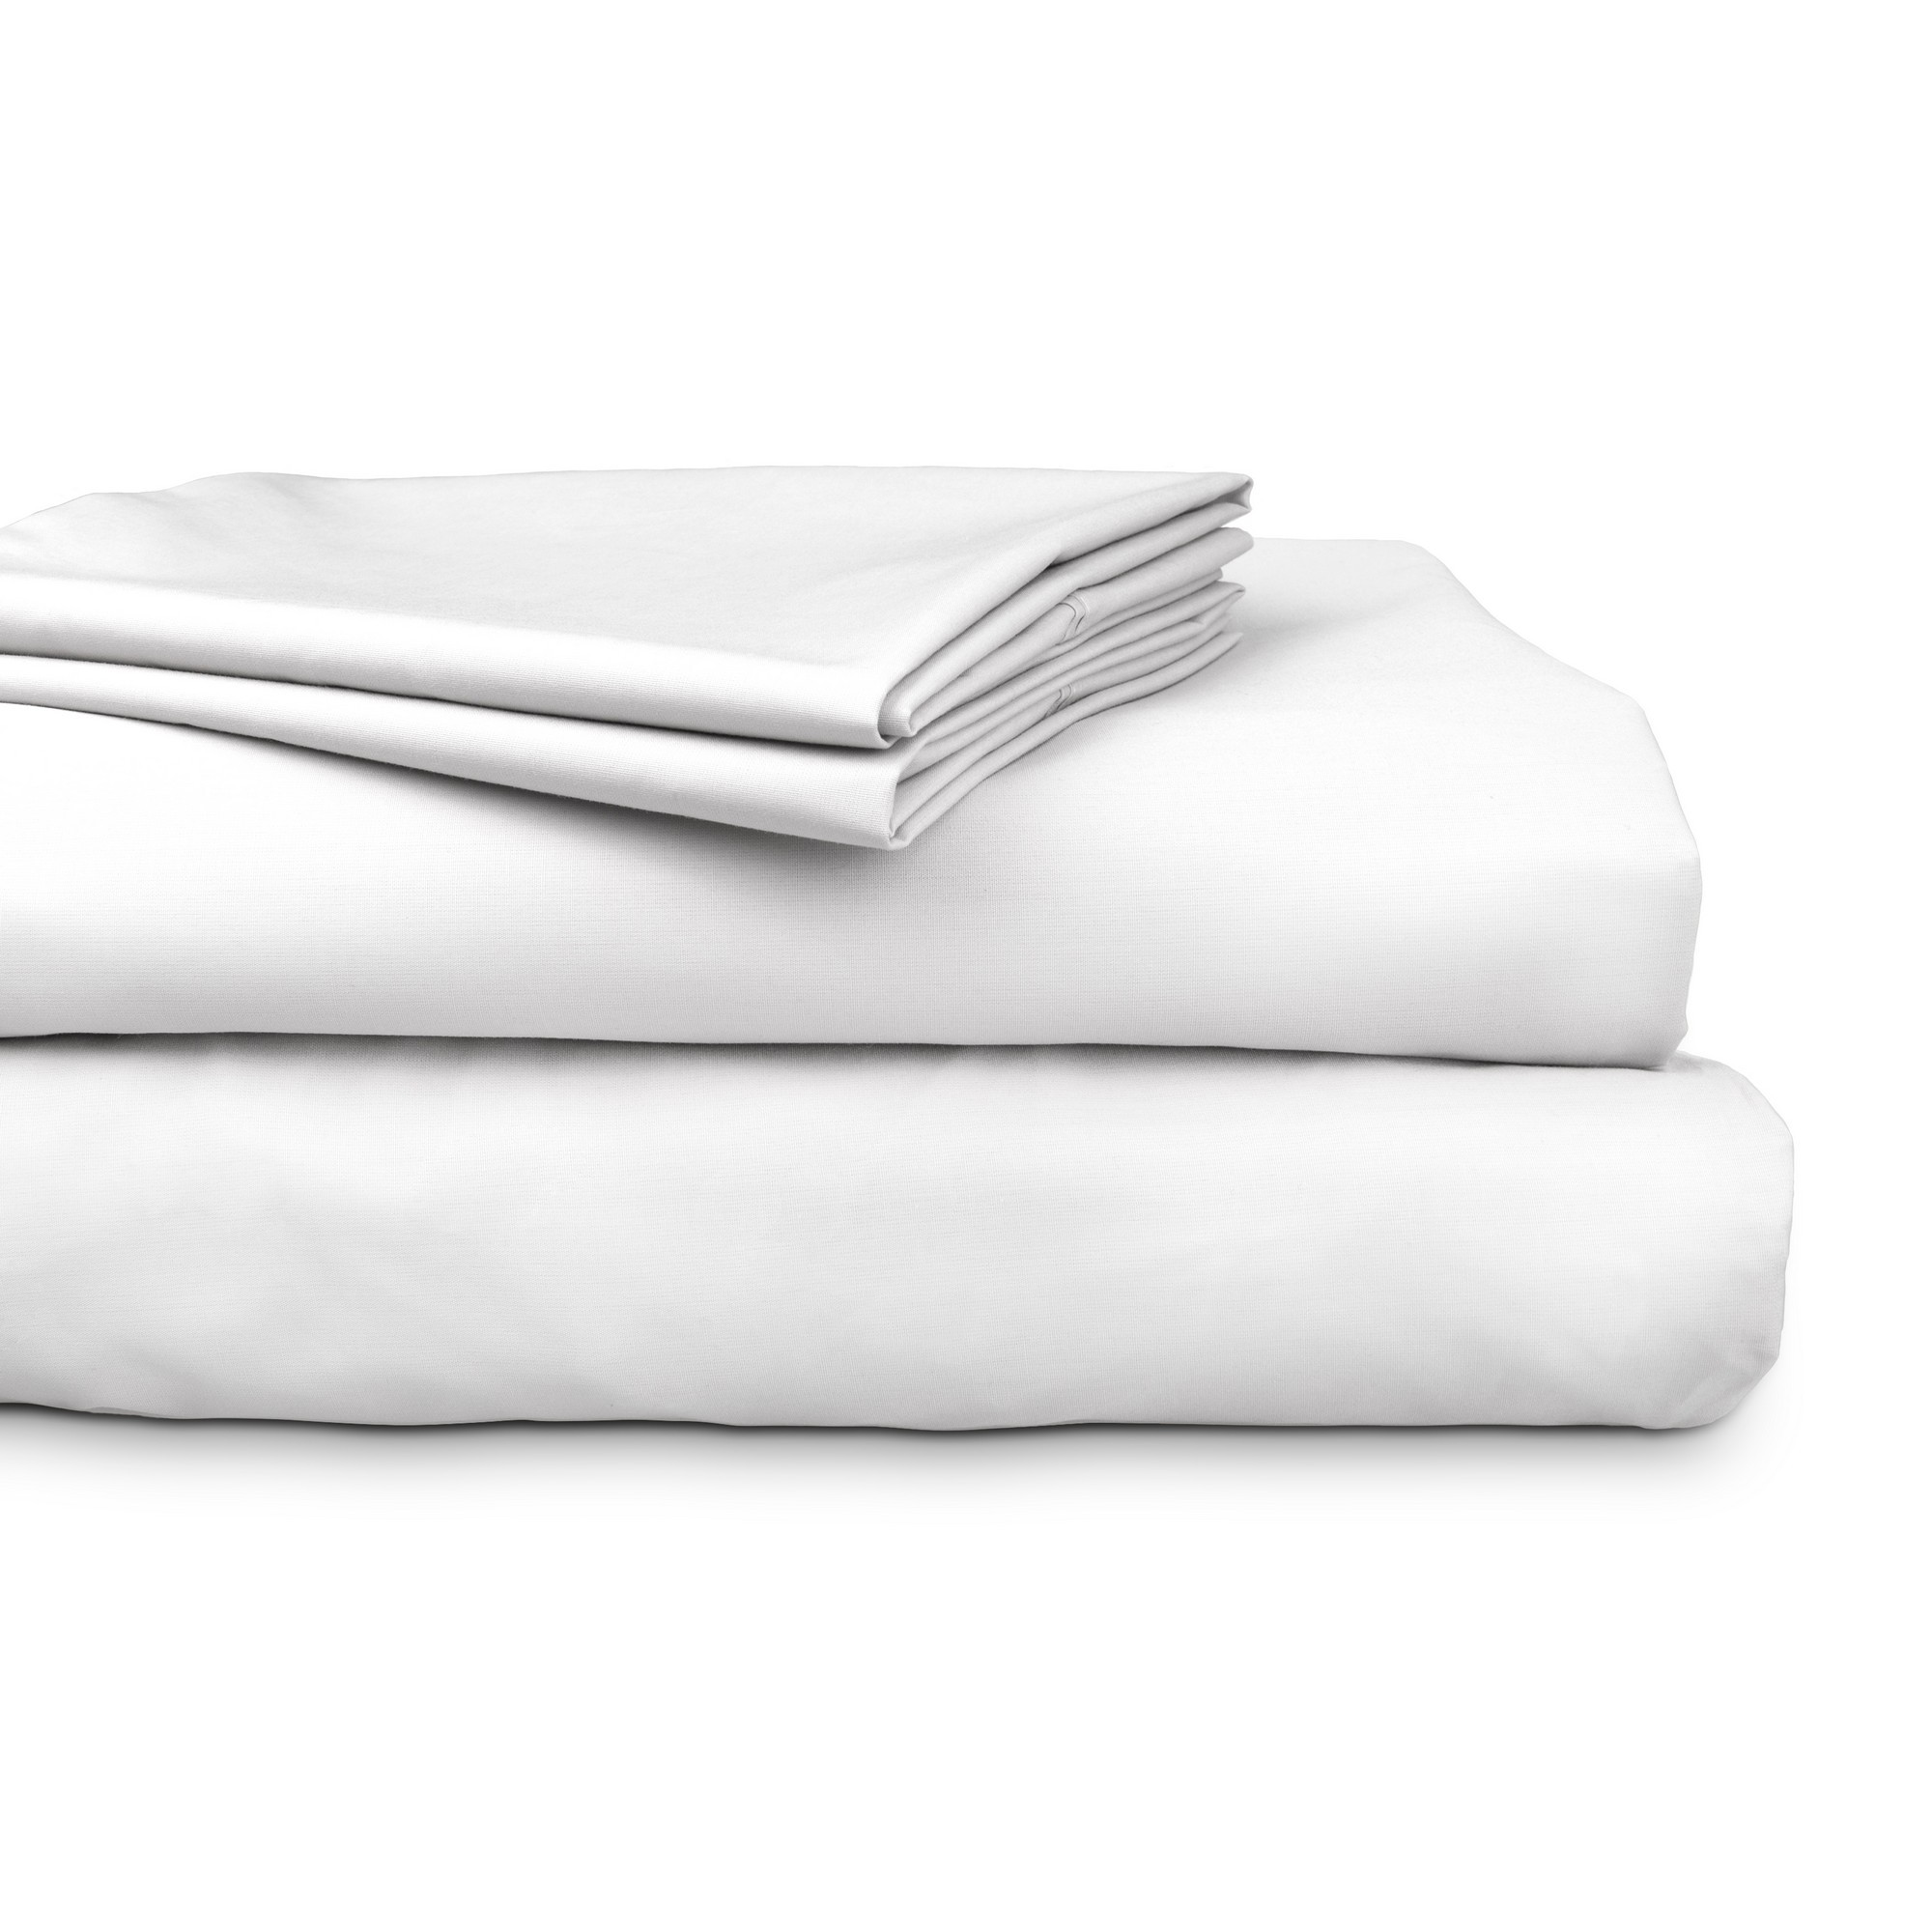 Ajee 4 Piece 300TC Cotton Sheet Set, Double, White